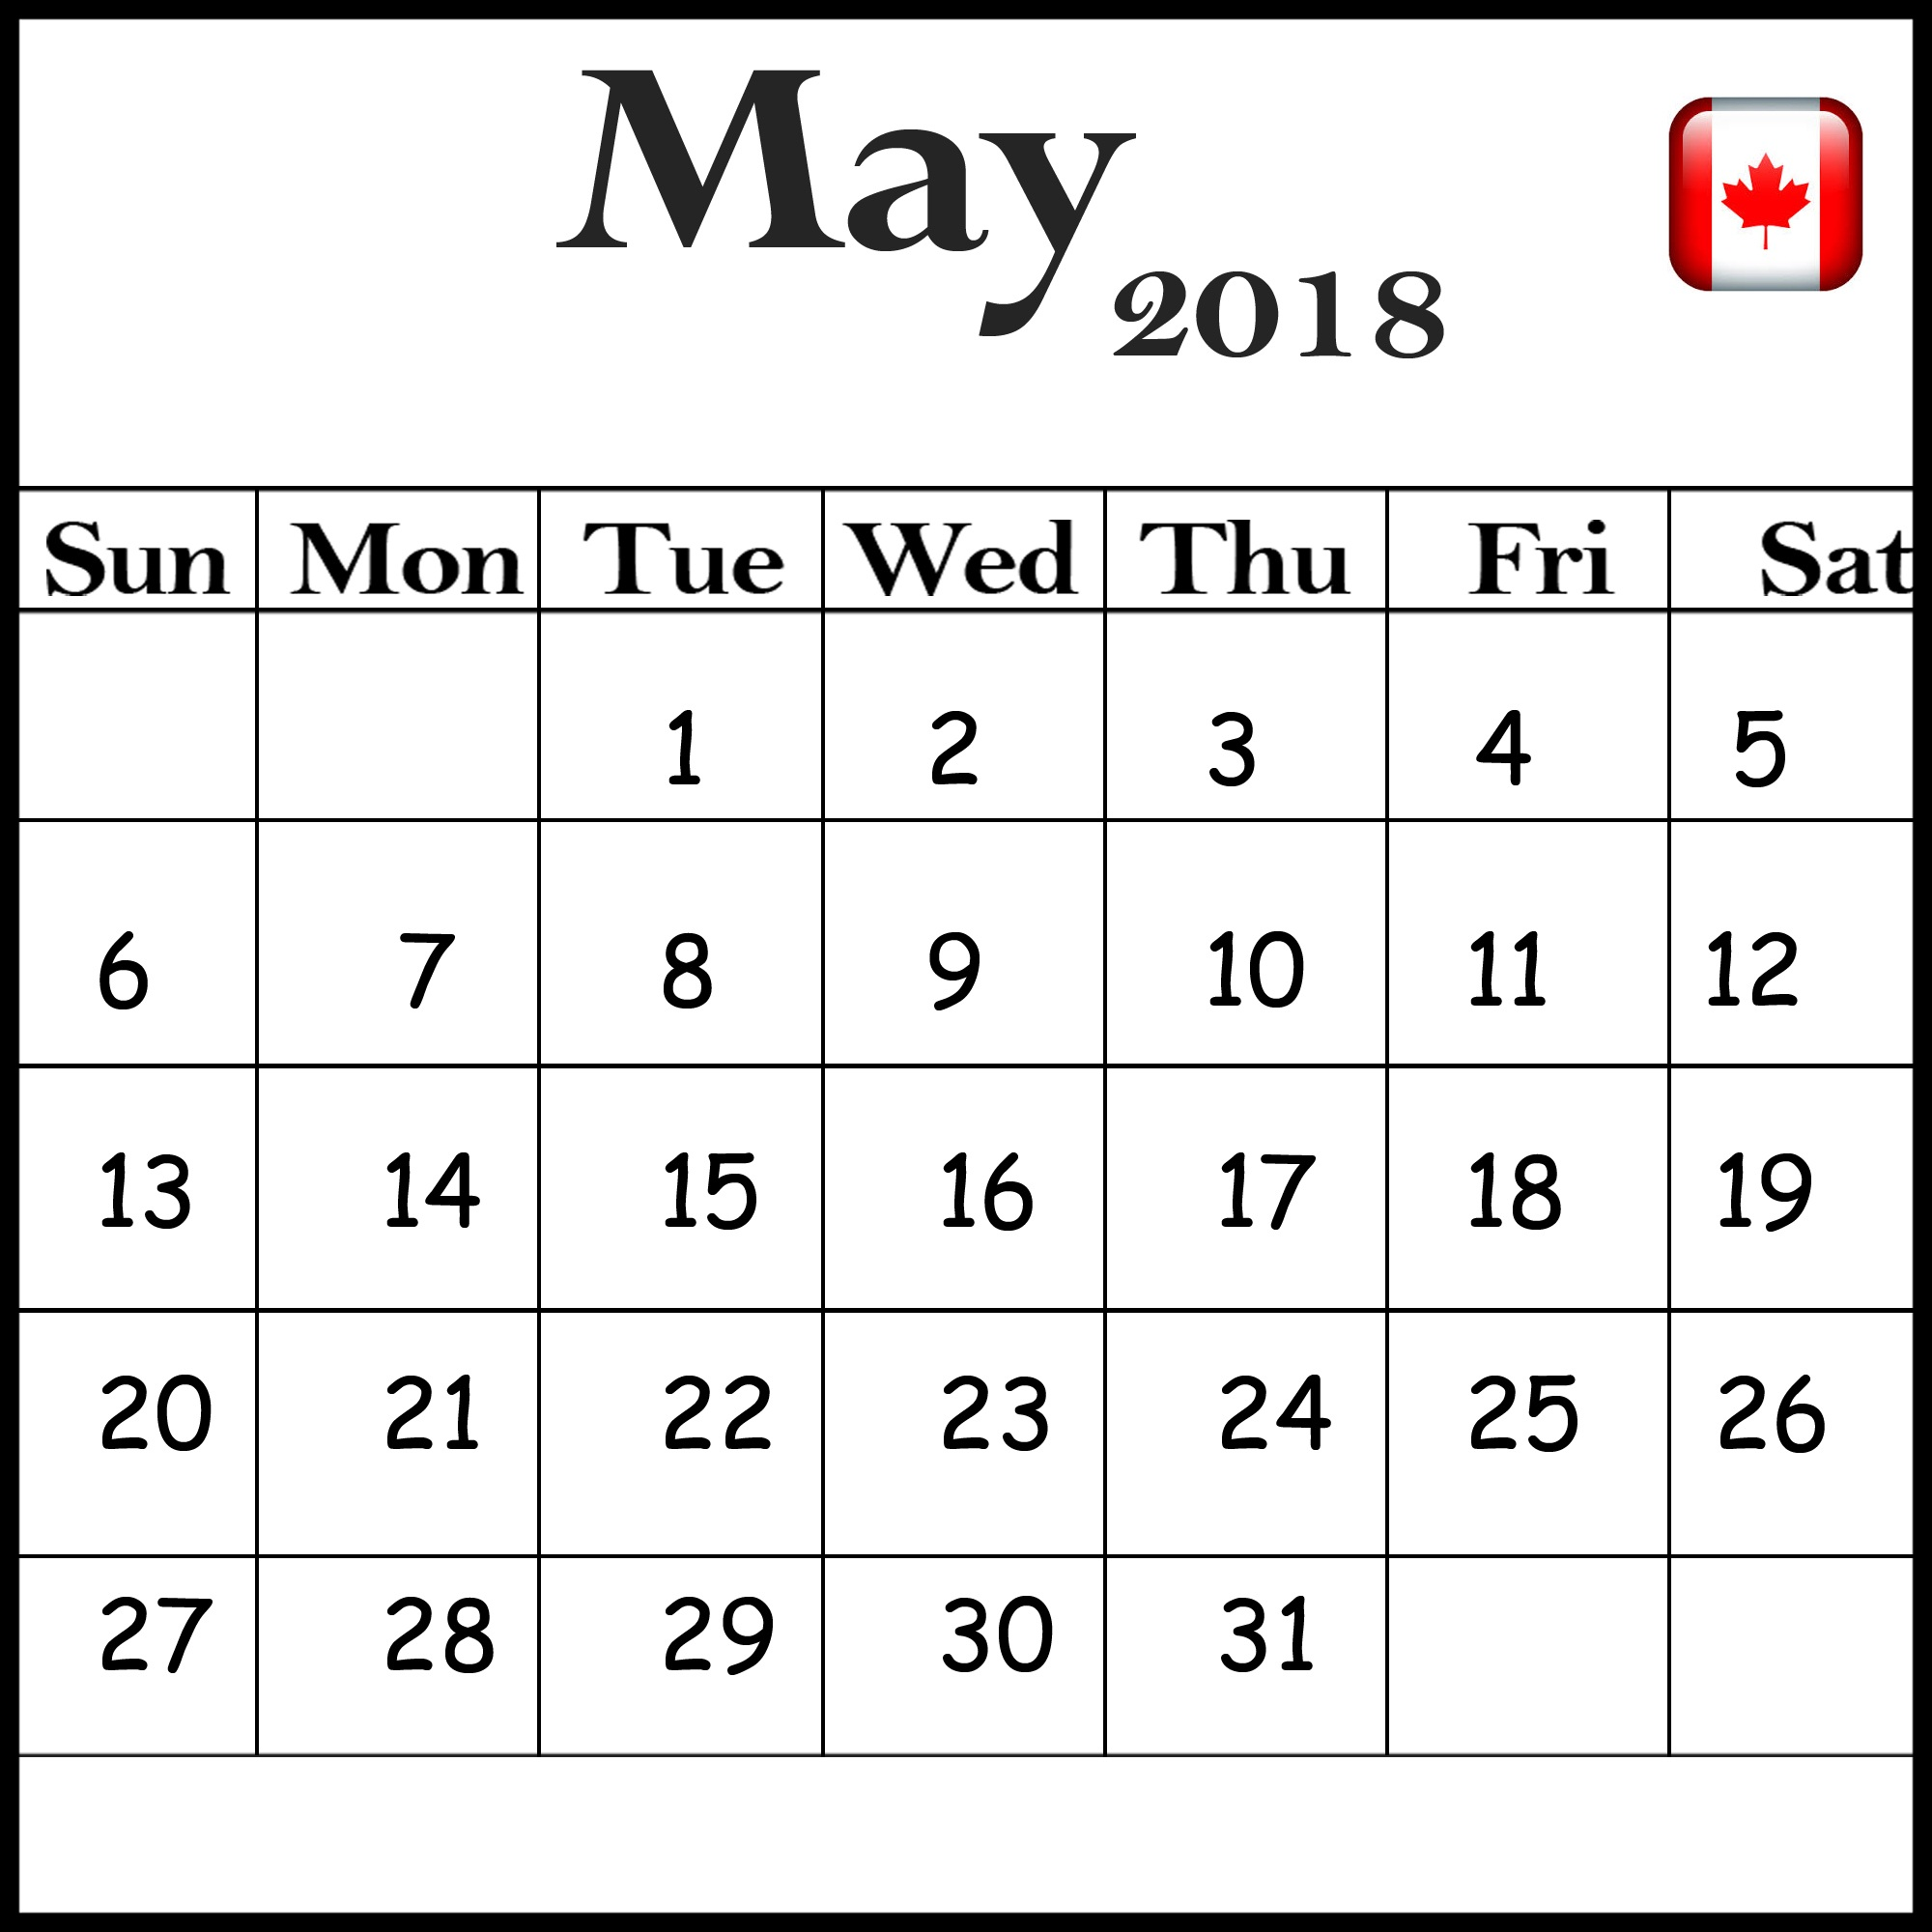 Canada Holidays 2018 May Calendar